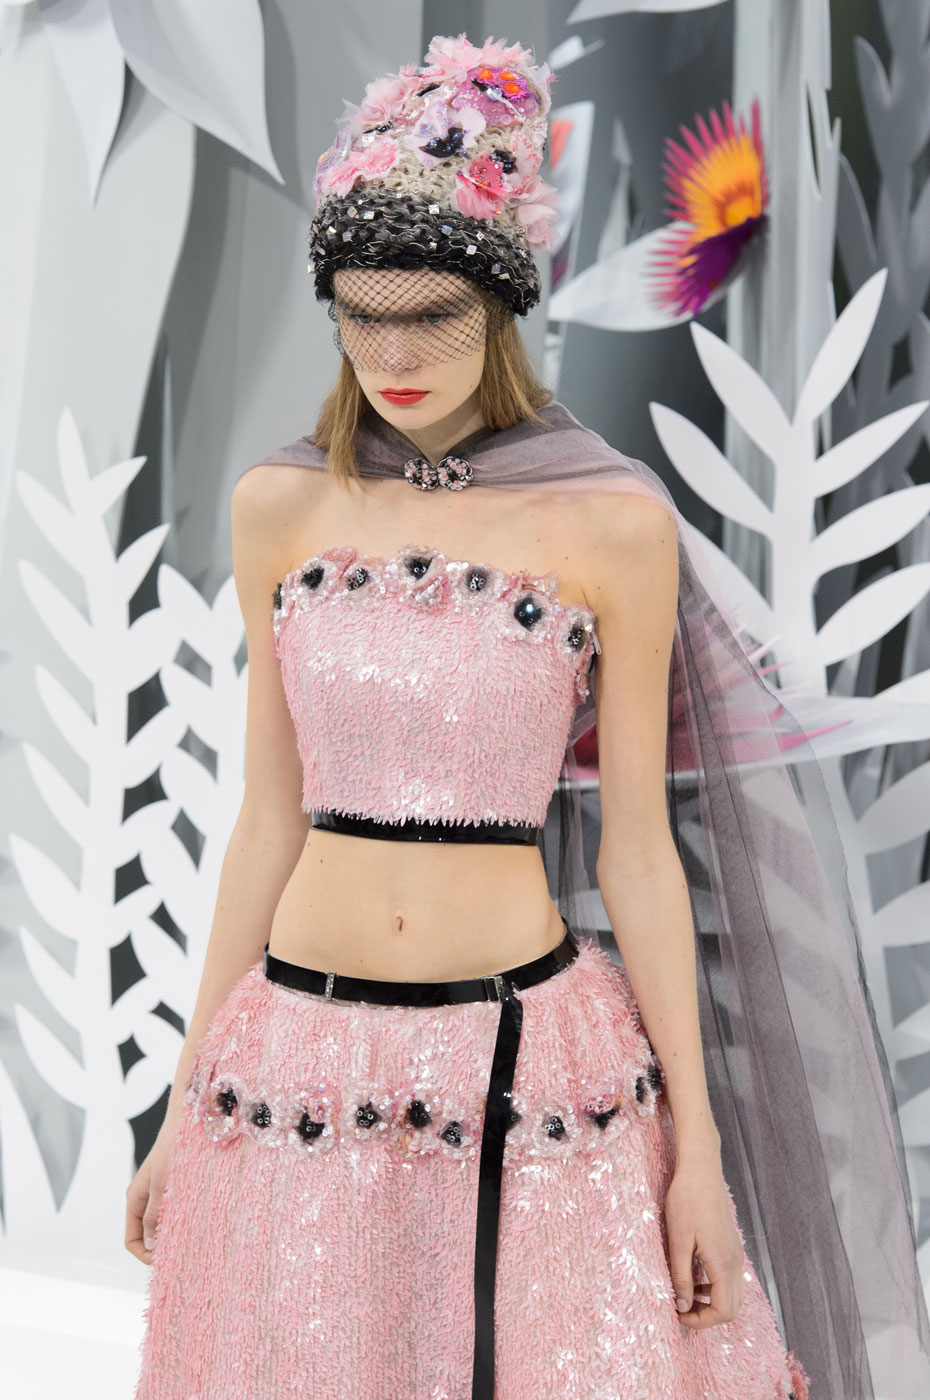 Chanel-fashion-runway-show-haute-couture-paris-spring-summer-2015-the-impression-148